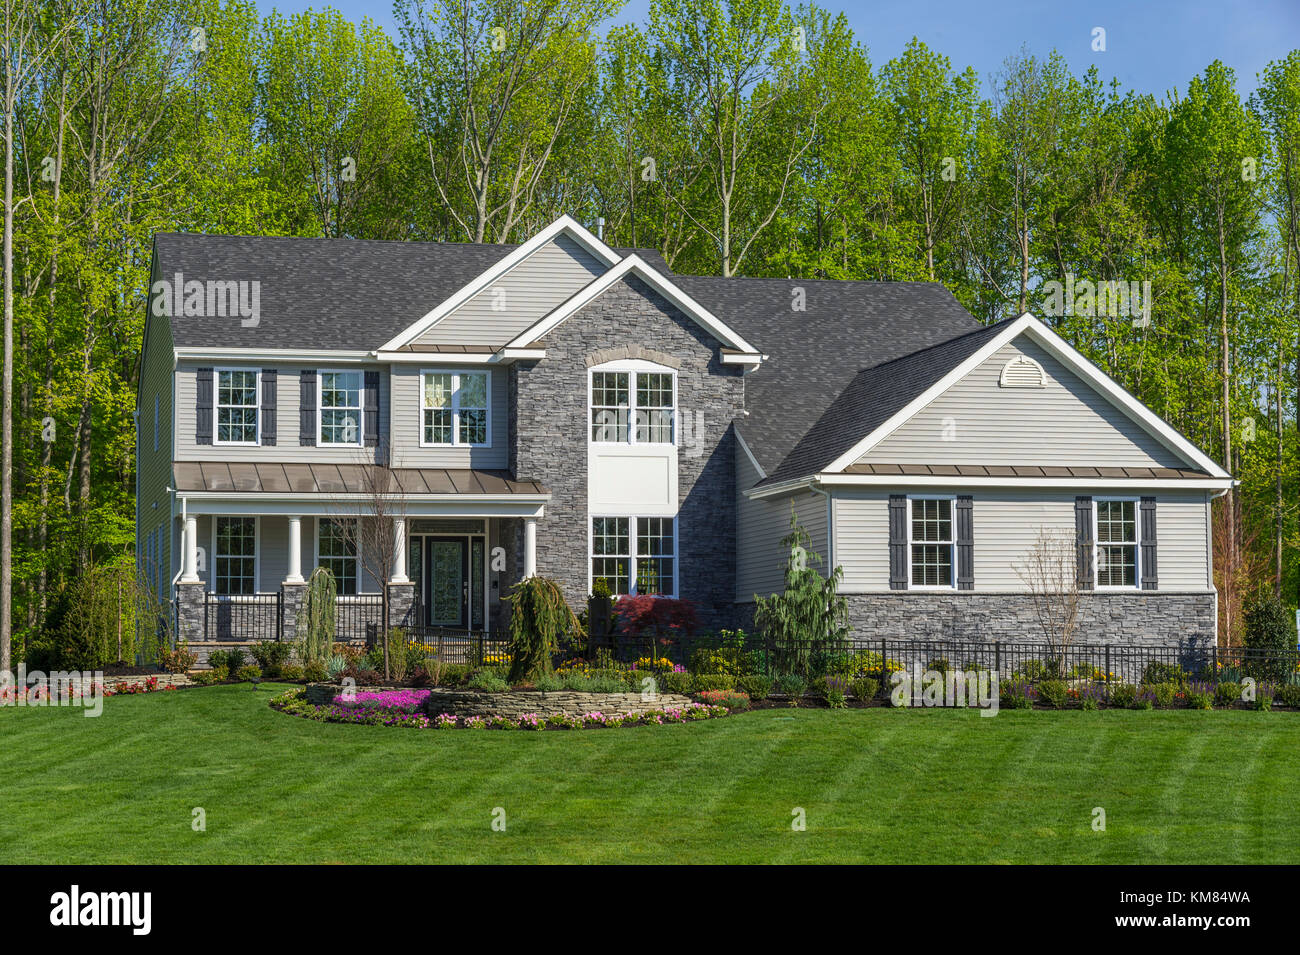 Exterior Of Suburban Home, New Jersey, USA - Stock Image